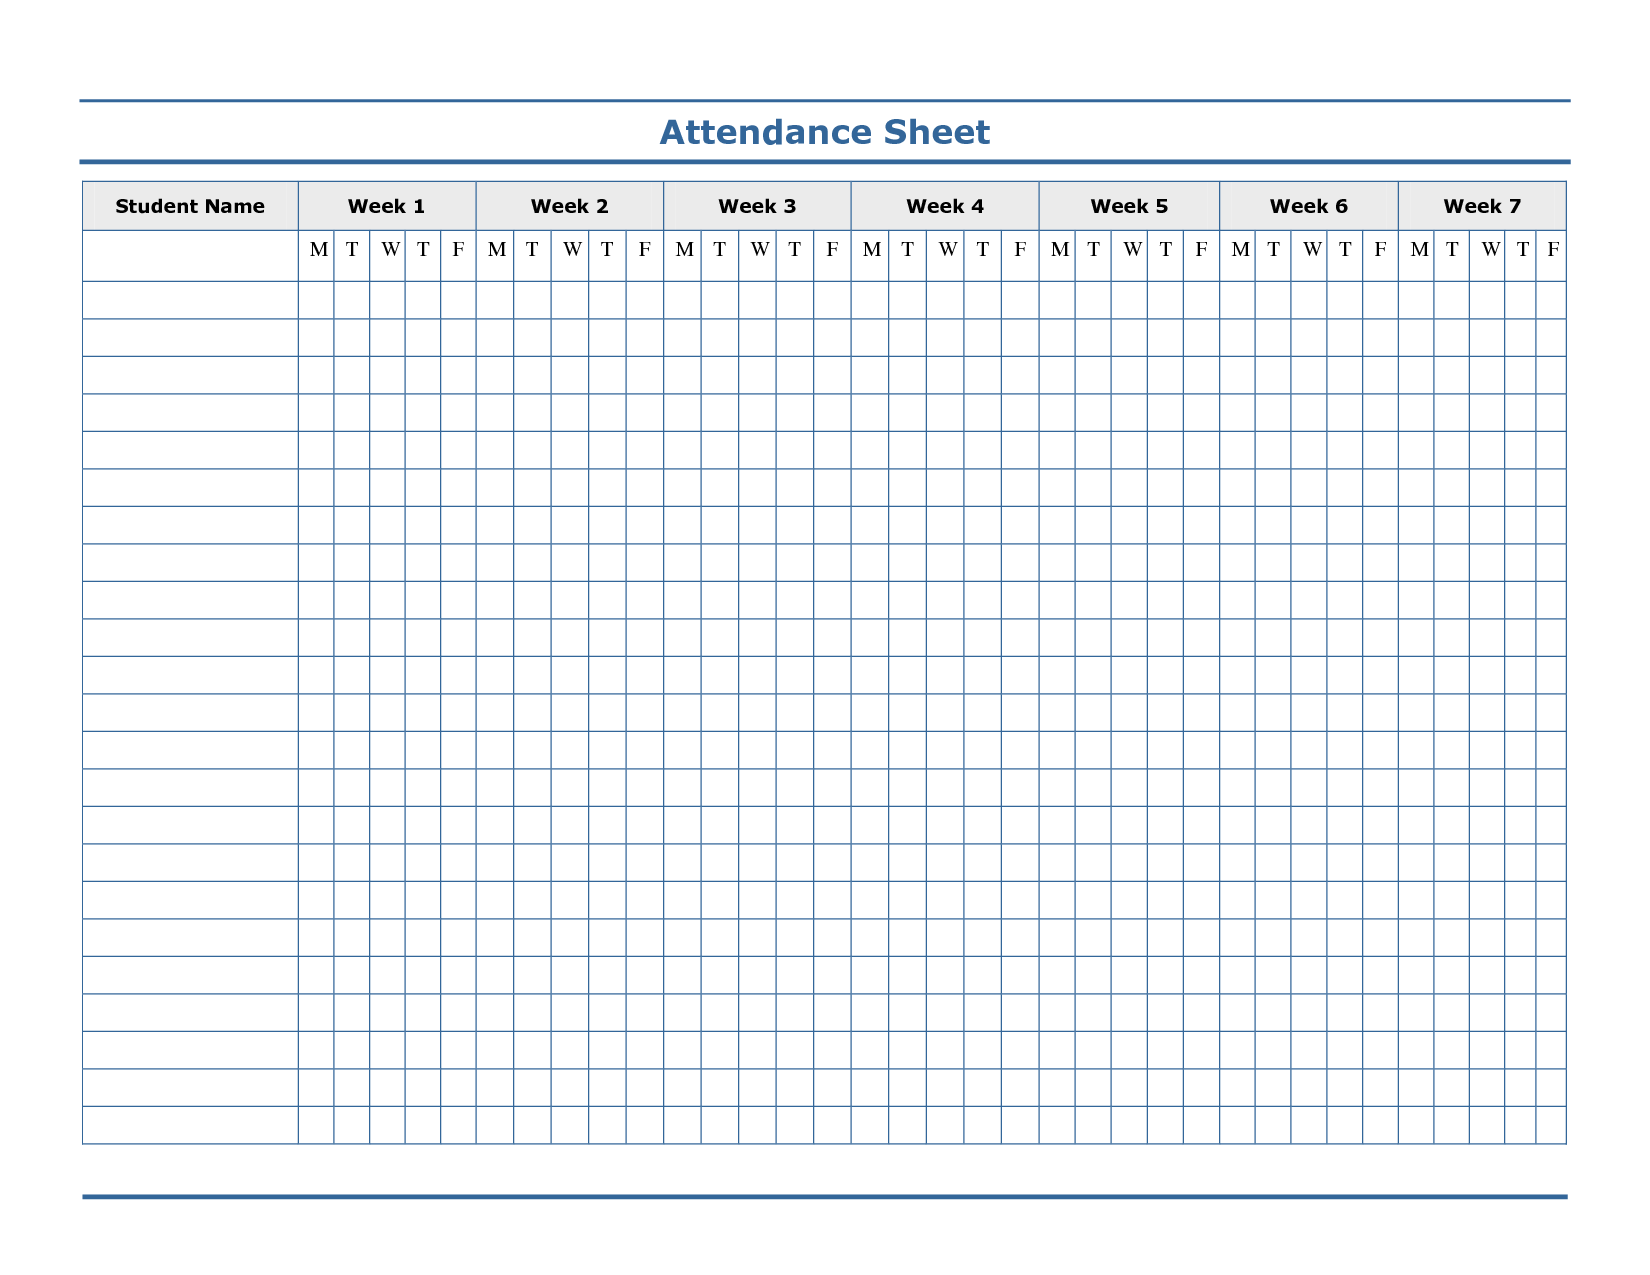 image about Attendance Sheet Printable identify Pin upon ATTENDANCE